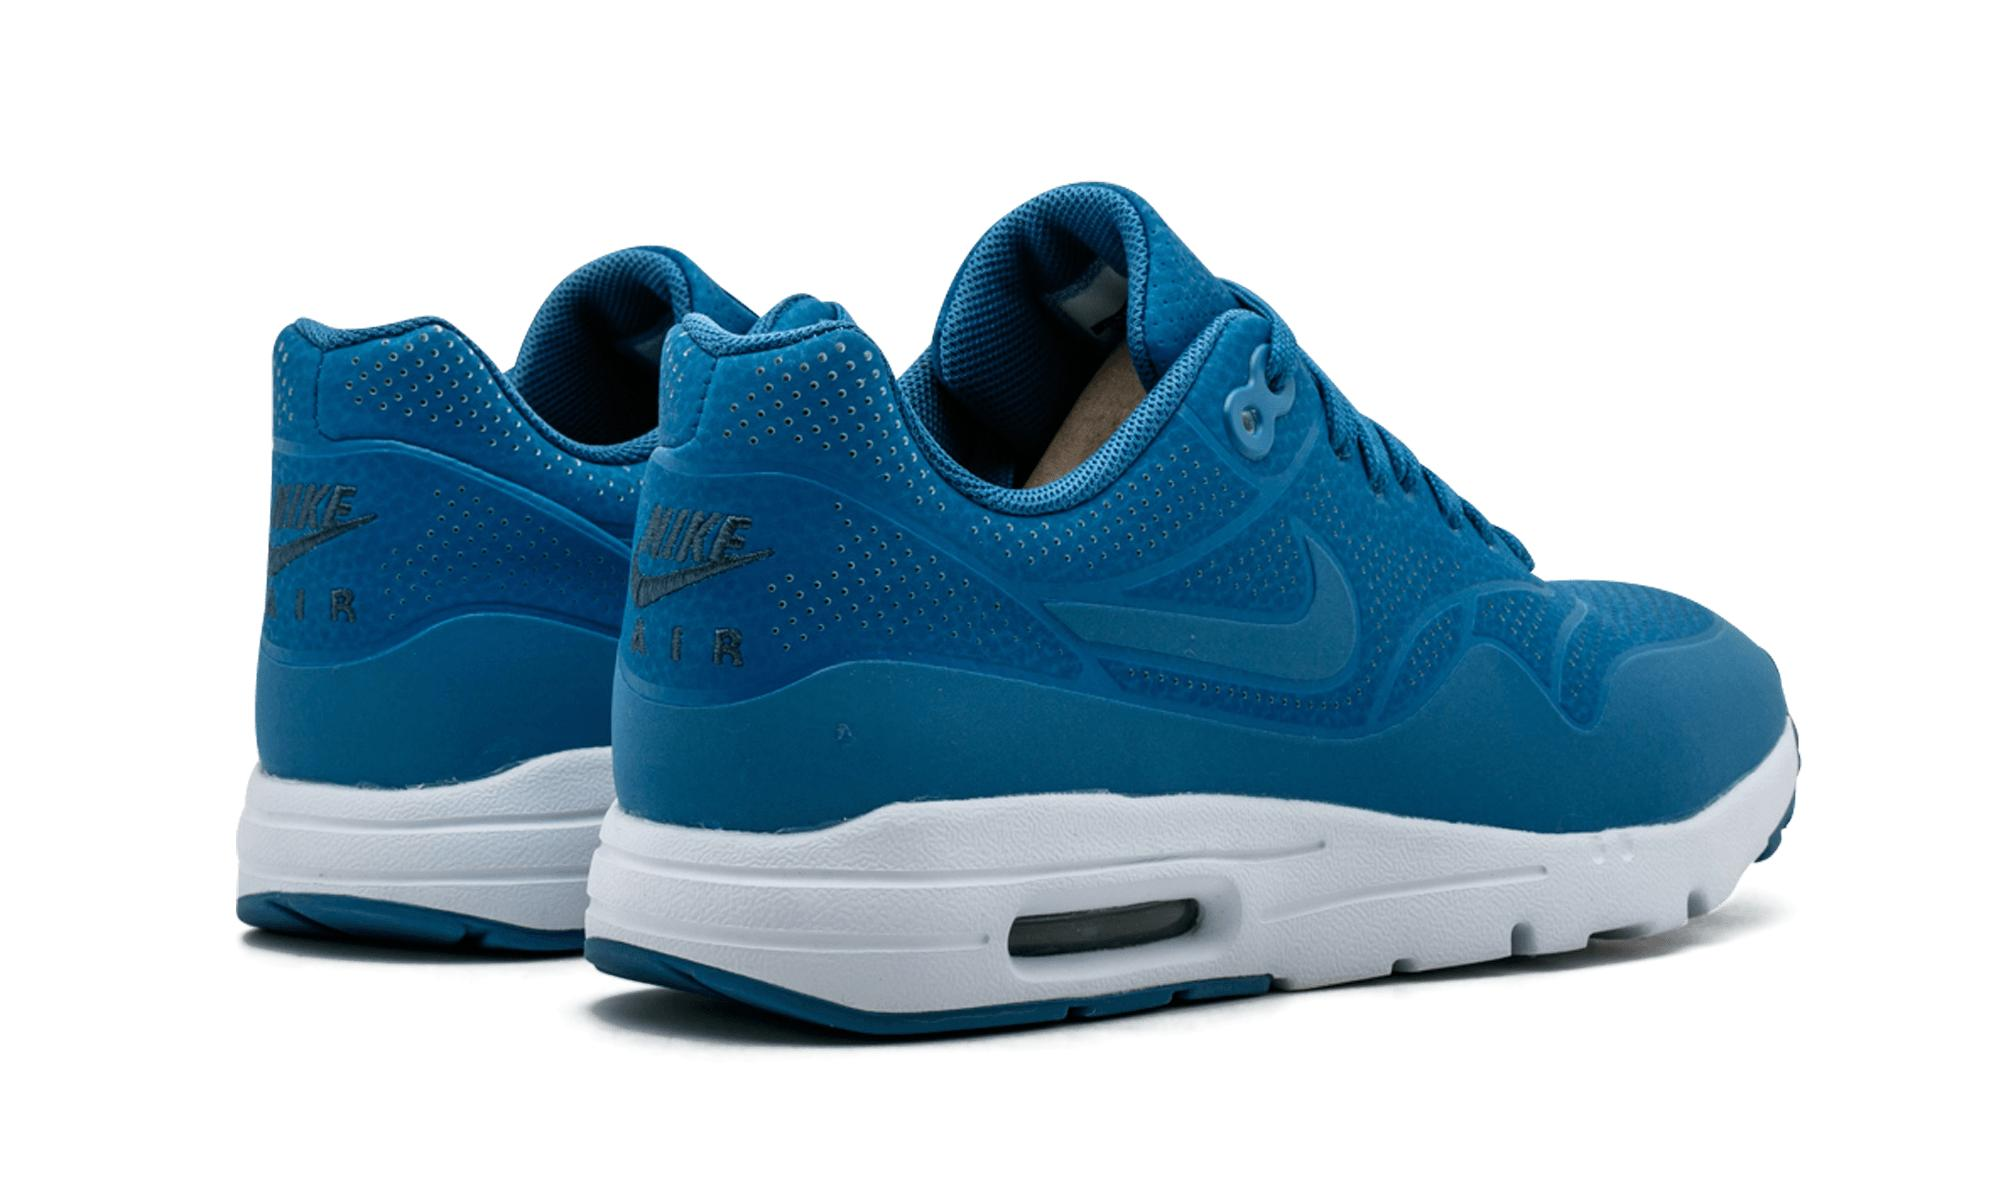 Womens Air Max 1 Ultra Moire Shoes Size 6w